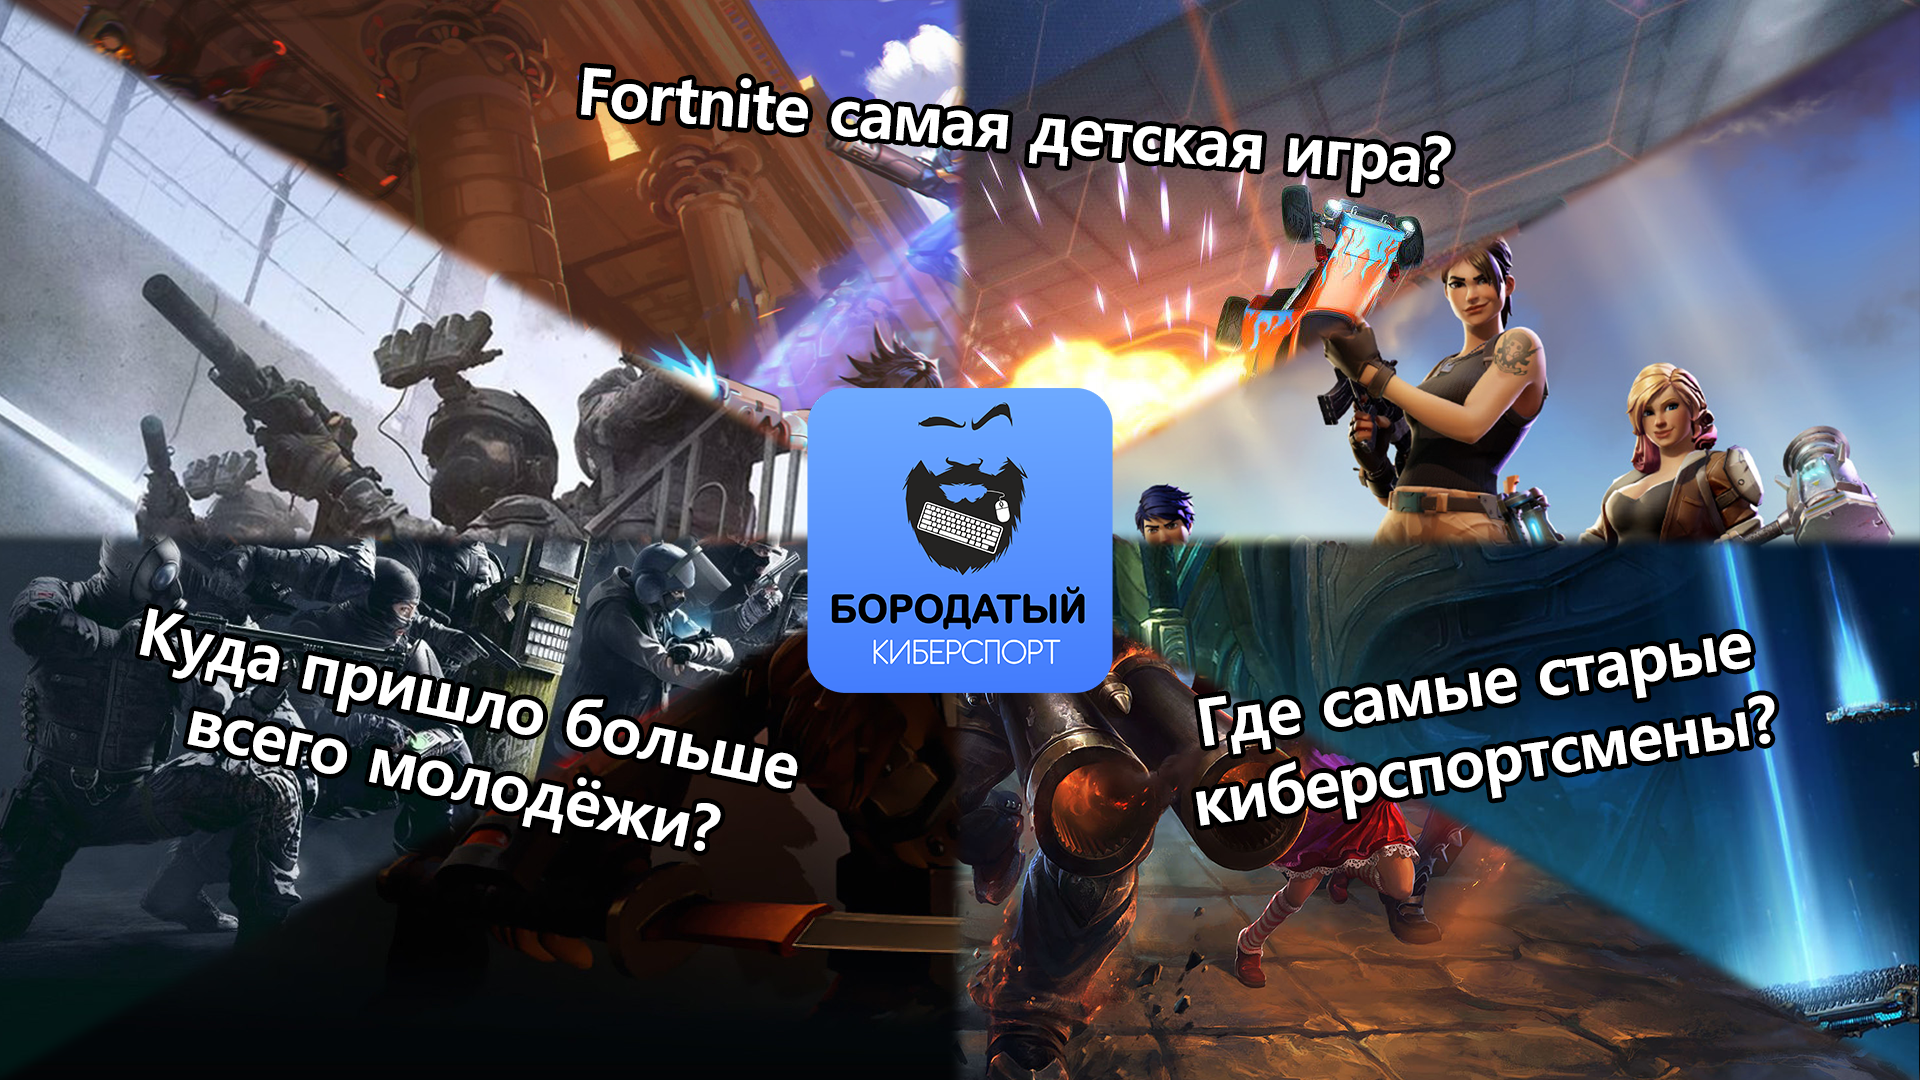 Counter-Strike: Global Offensive, Overwatch, Rocket League, Fortnite, PUBG, StarCraft, Rainbow Six Siege, Call of Duty, League of Legends, Dota 2